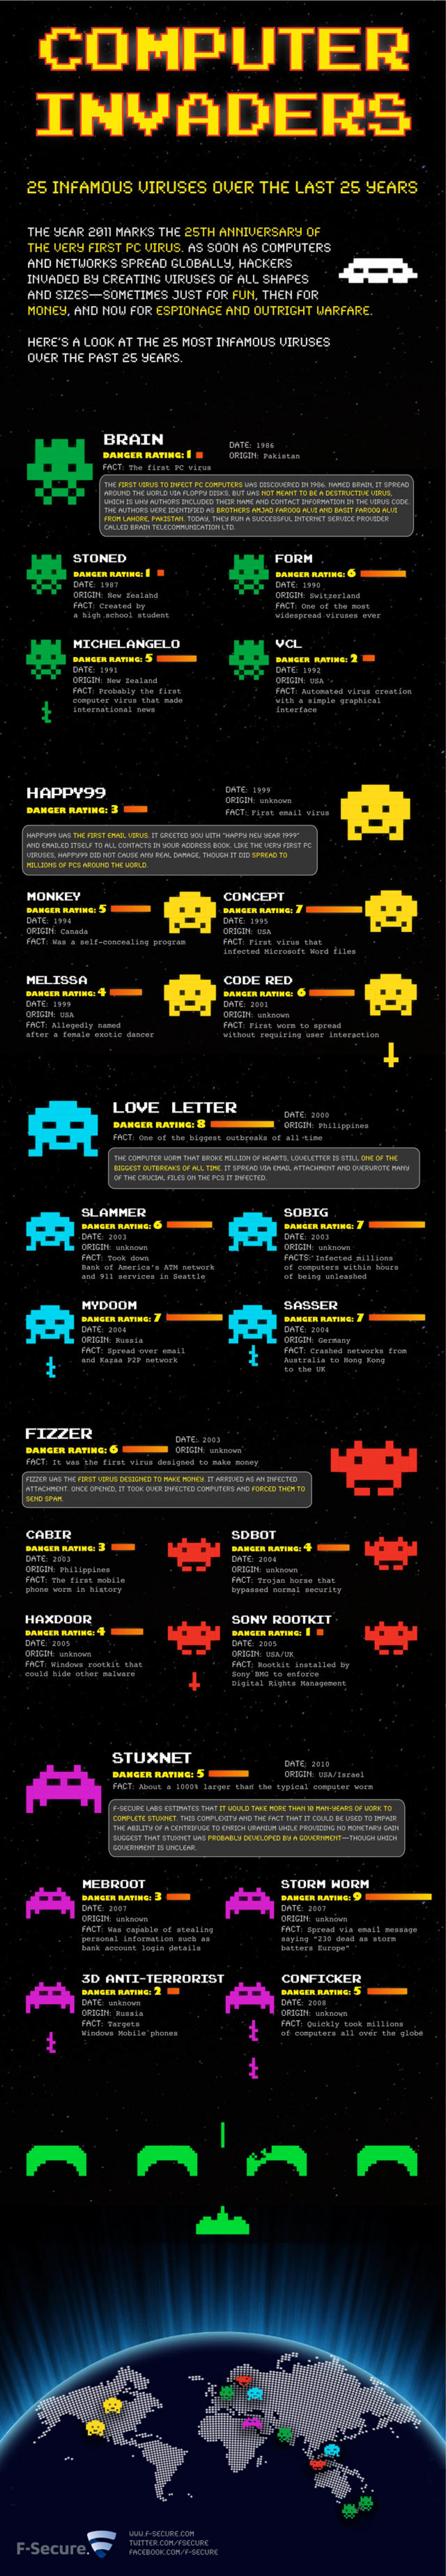 Computer Invaders: 25 Infamous Viruses Over the Last 25 Years Infographic